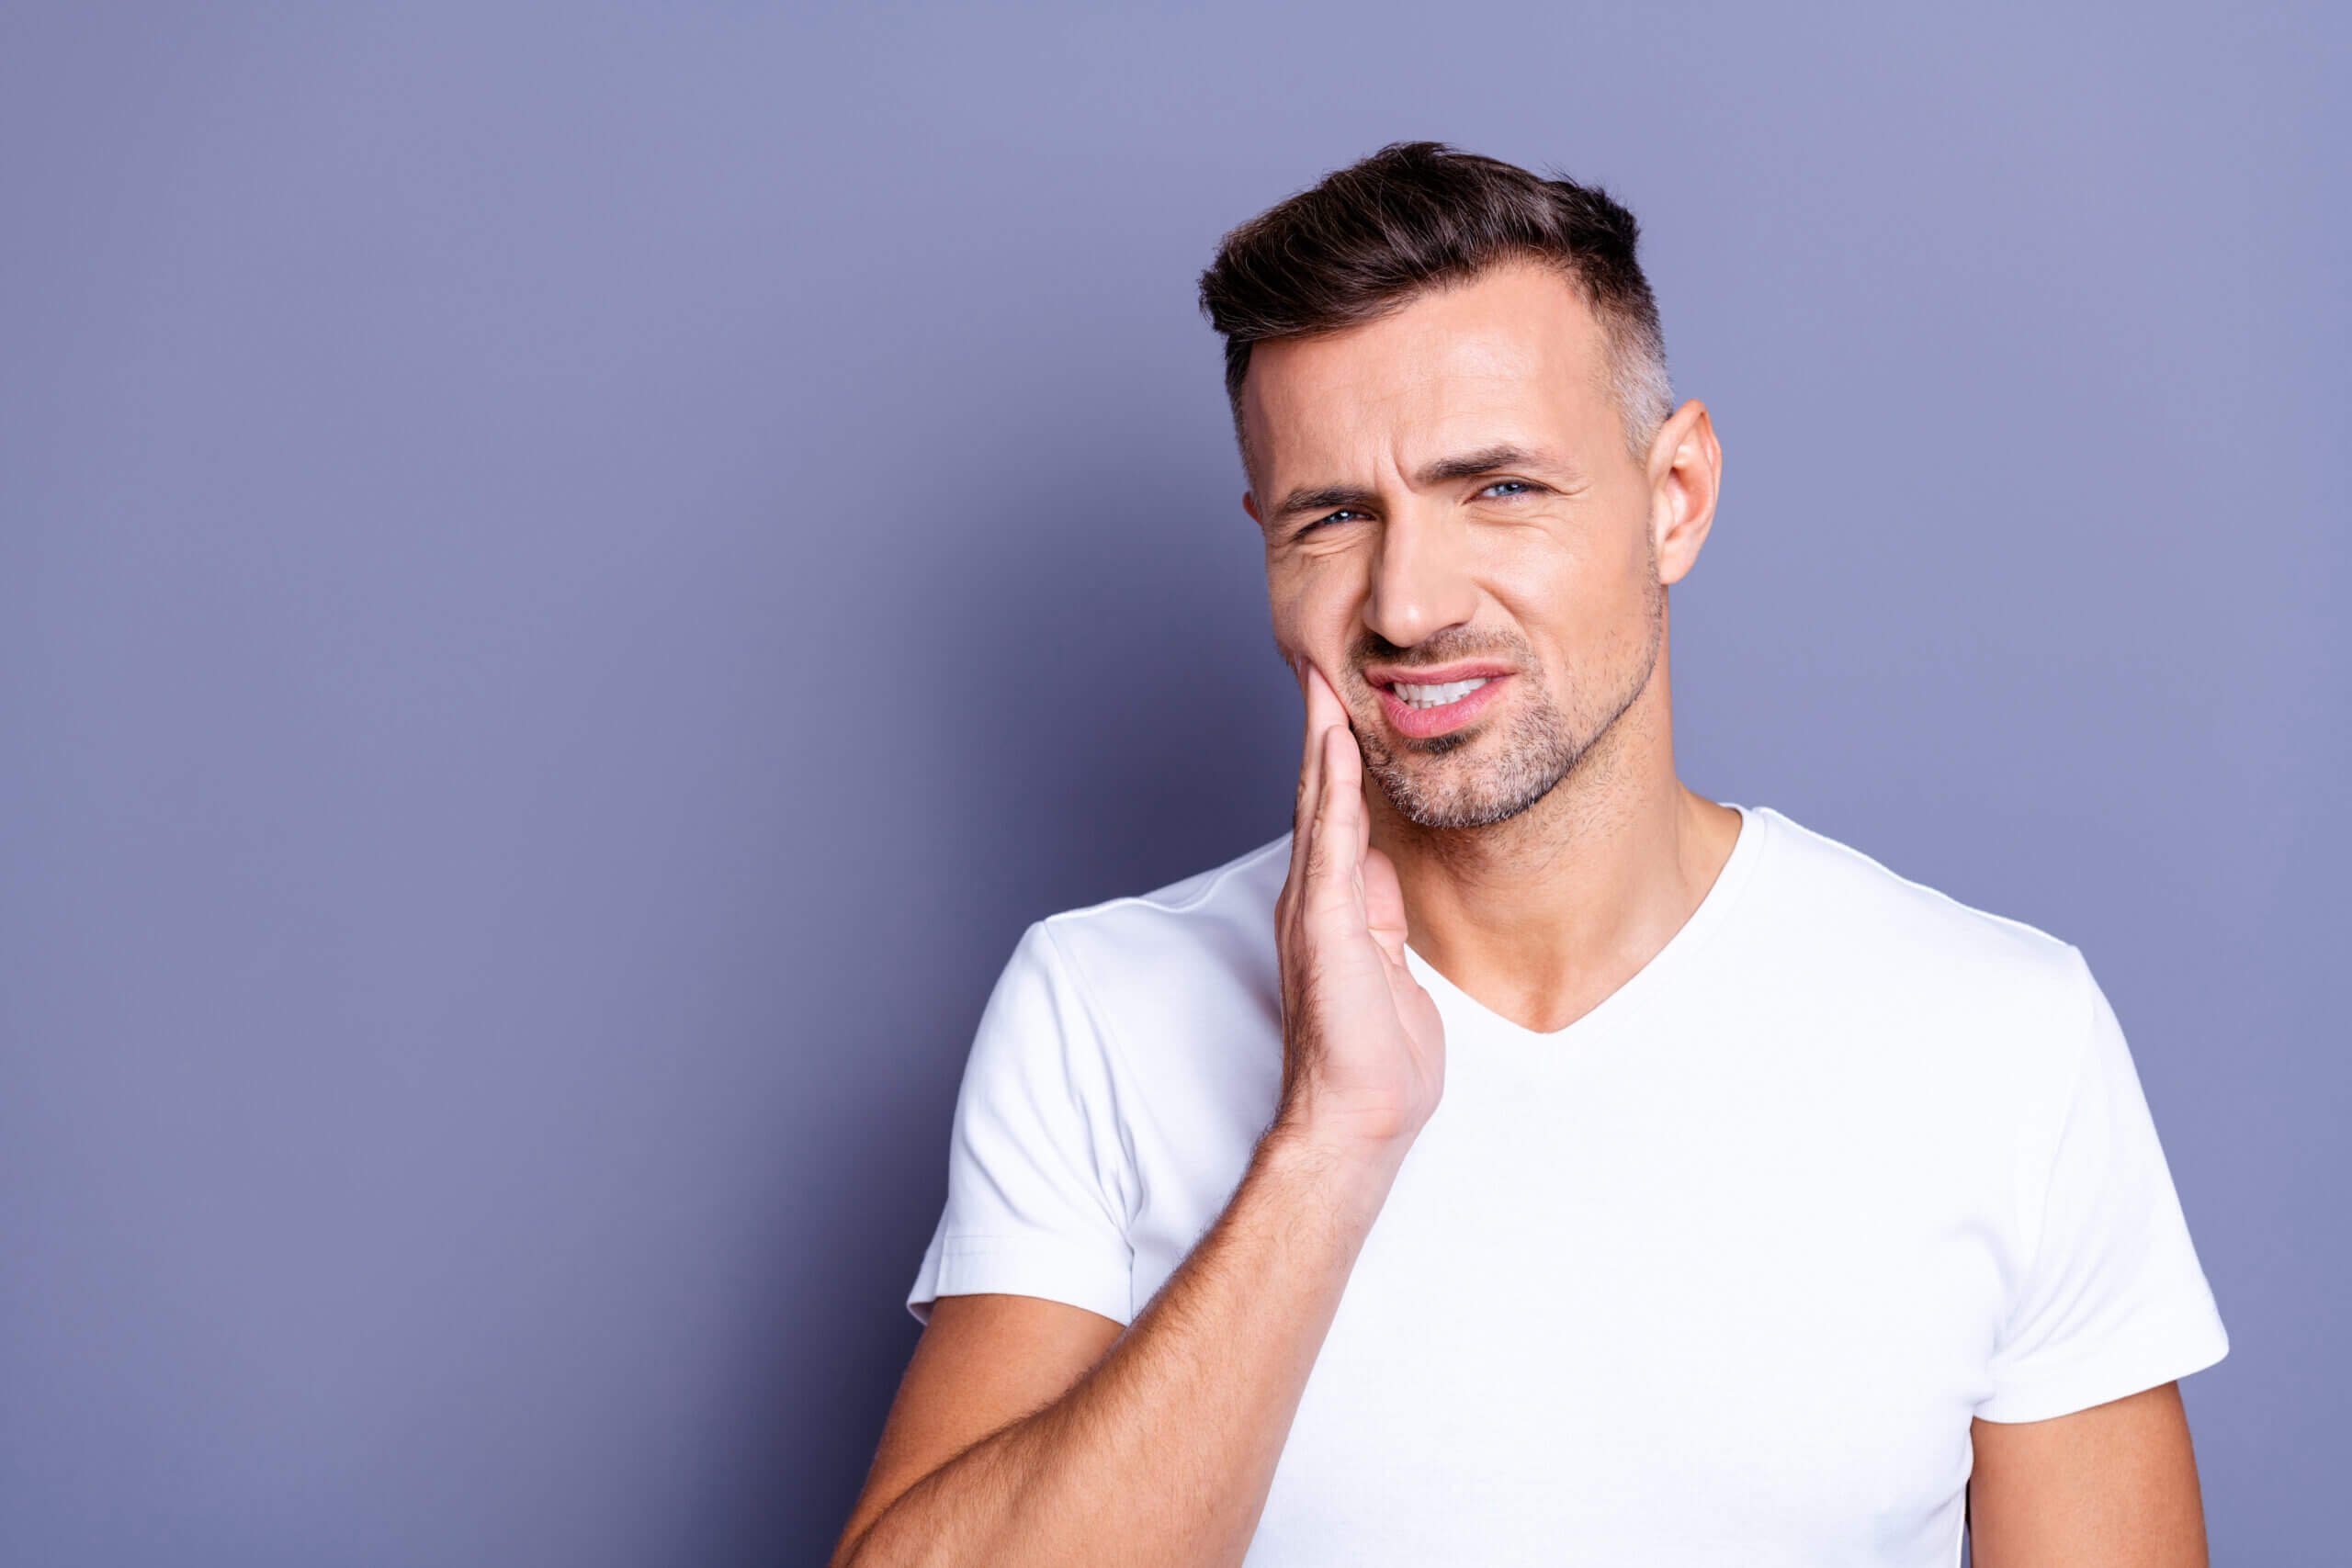 crack a tooth Close up photo amazing he him his middle age macho hand arm hold cheekbone, teeth terrible pain injury sadness cry facial expression weakness wear casual white t-shirt isolated grey background